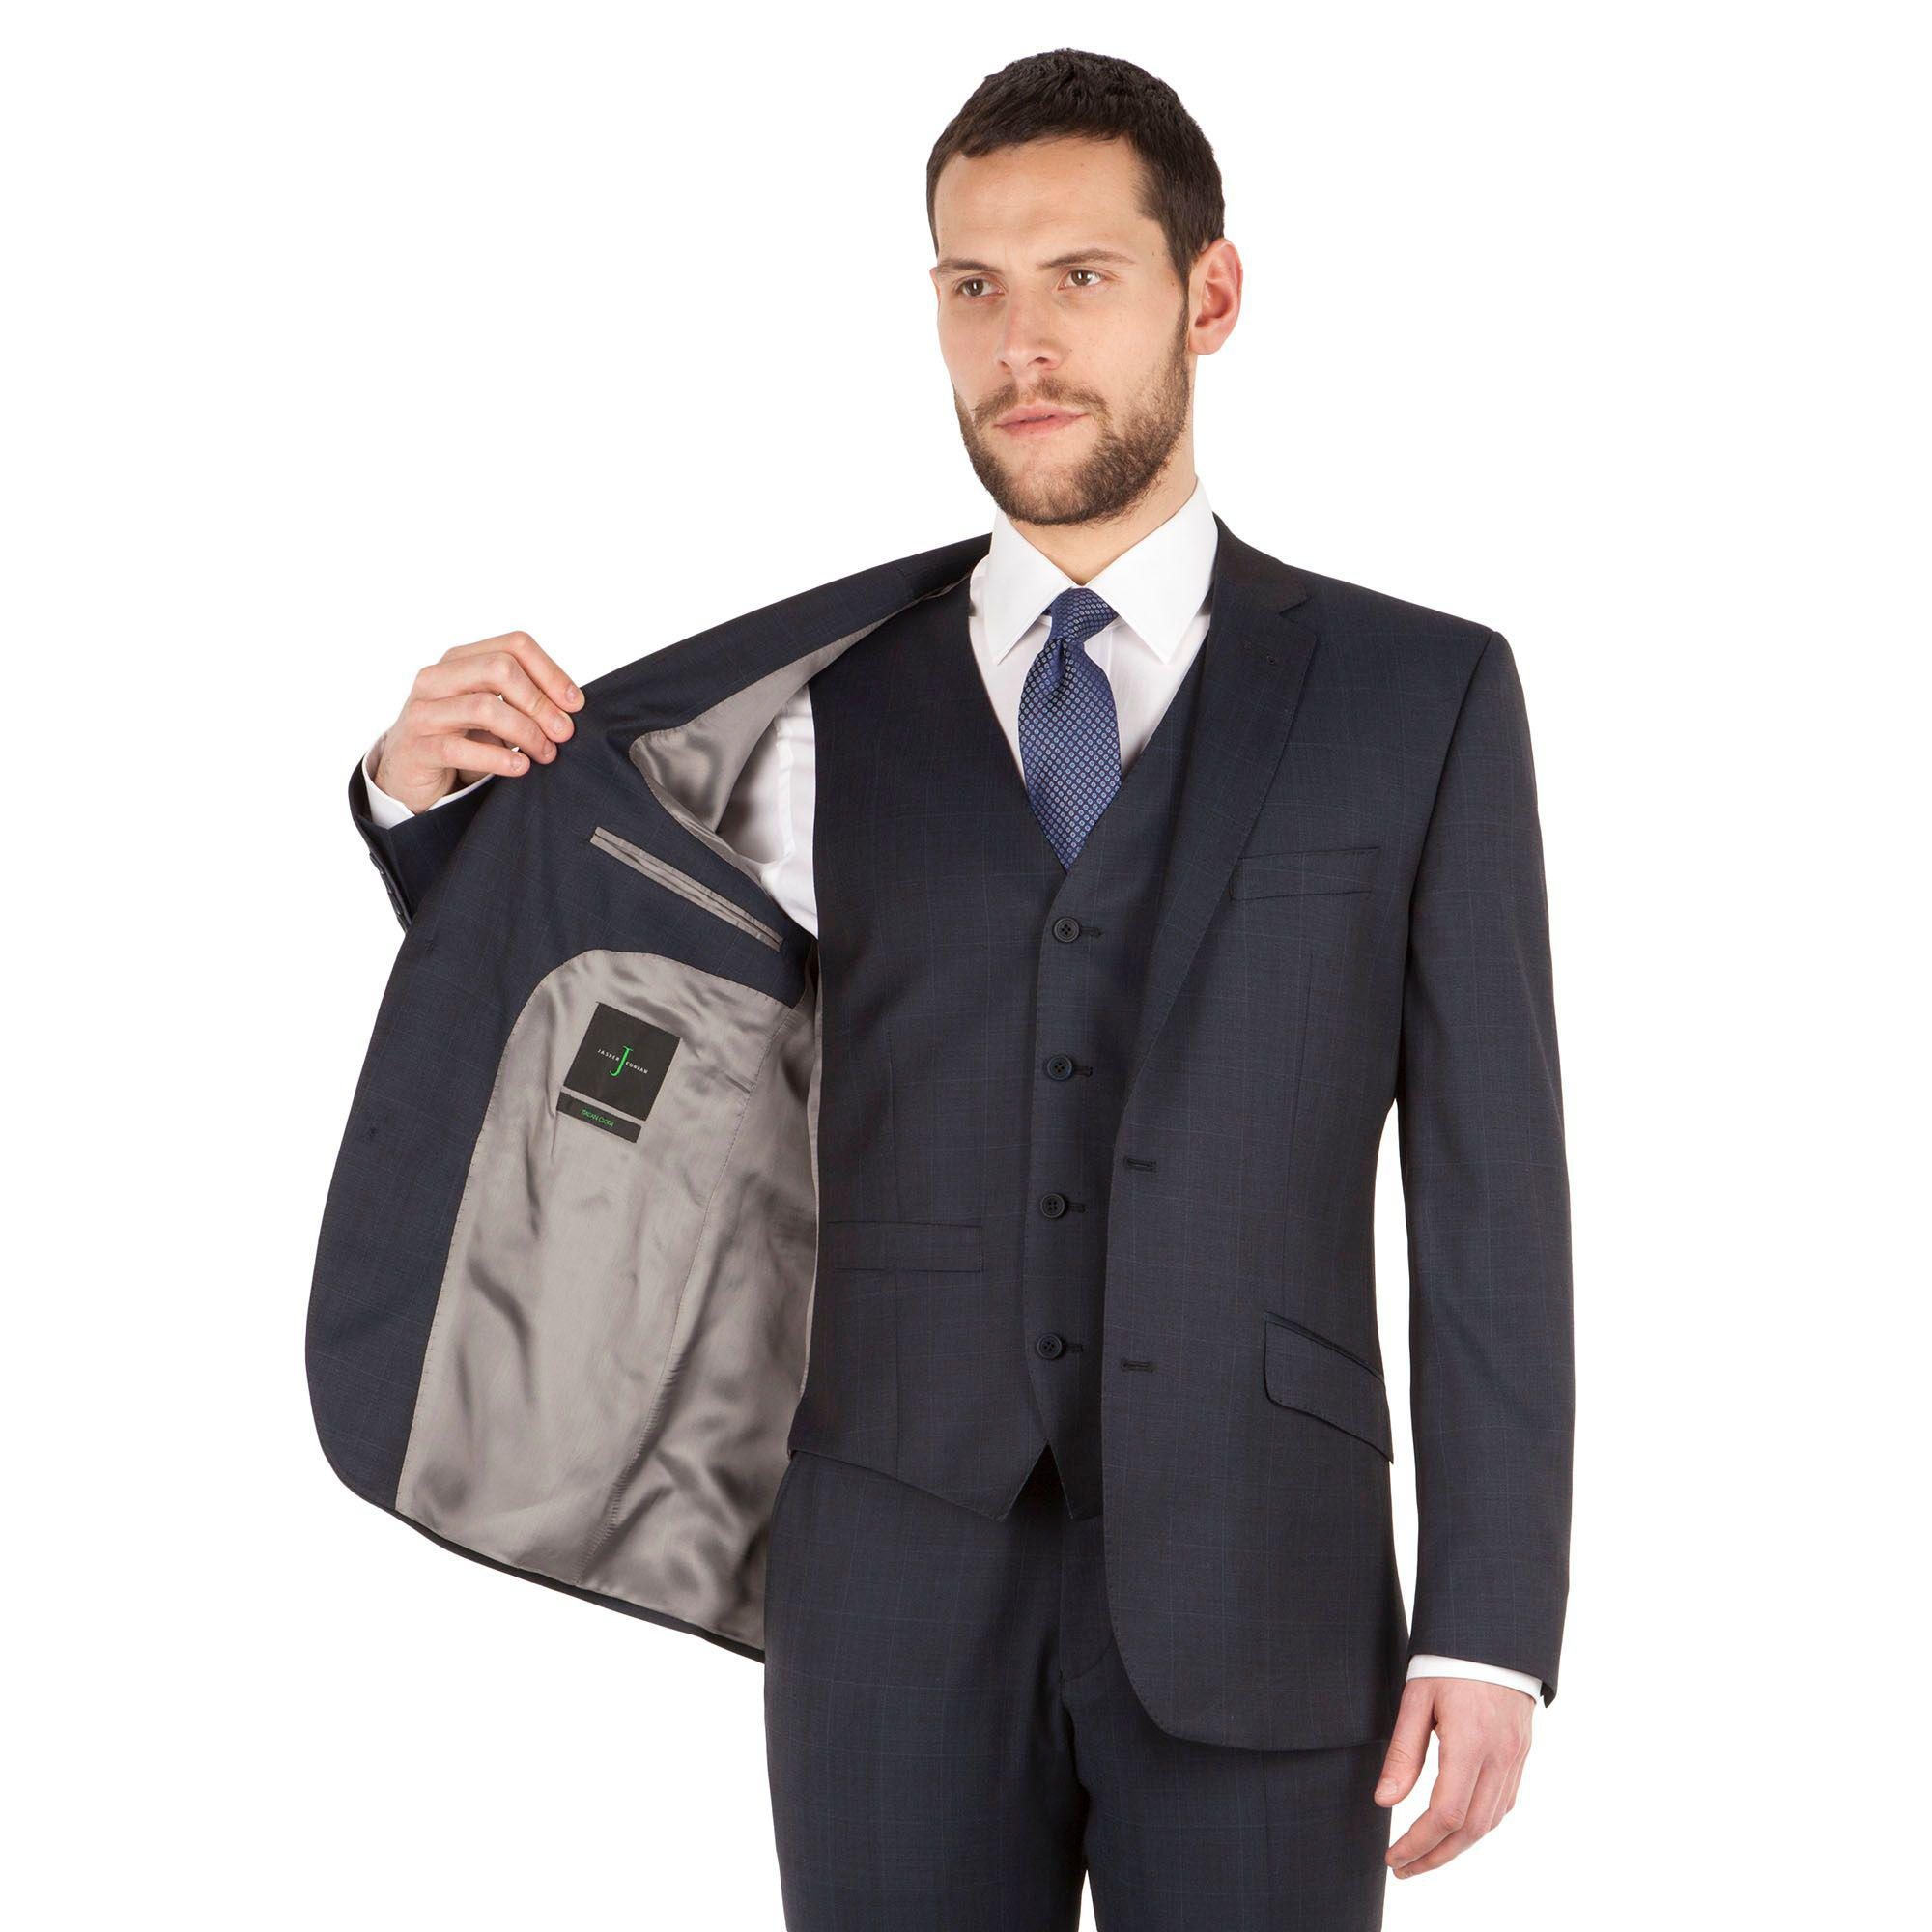 728c83c0c J By Jasper Conran - Blue Windowpane Check 2 Button Front Tailored Fit  Luxury Suit Jacket. View fullscreen